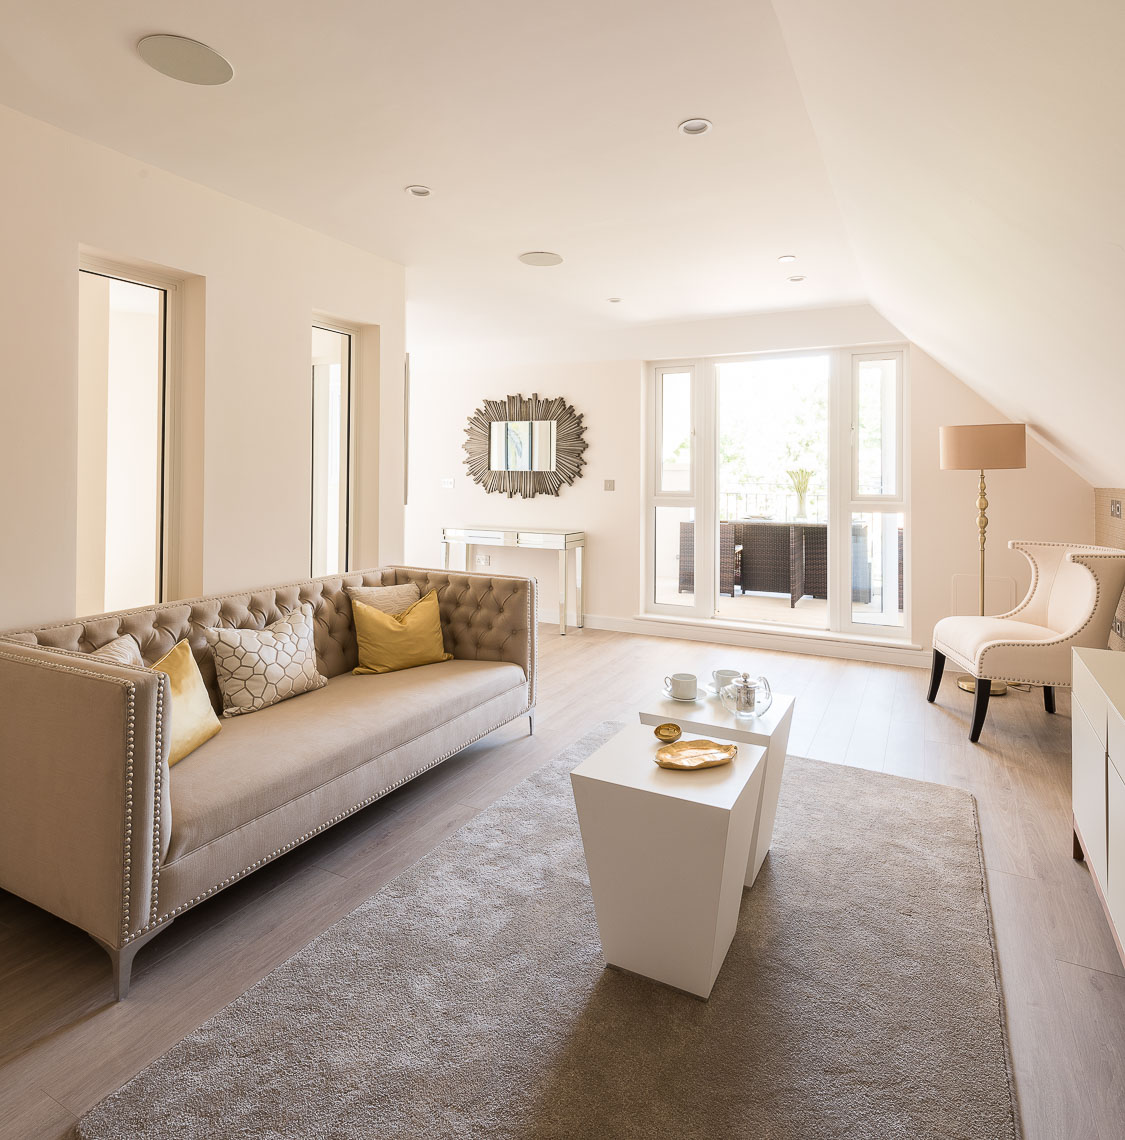 contemporary-living-room-property-photography-fruition-new-build-london-22